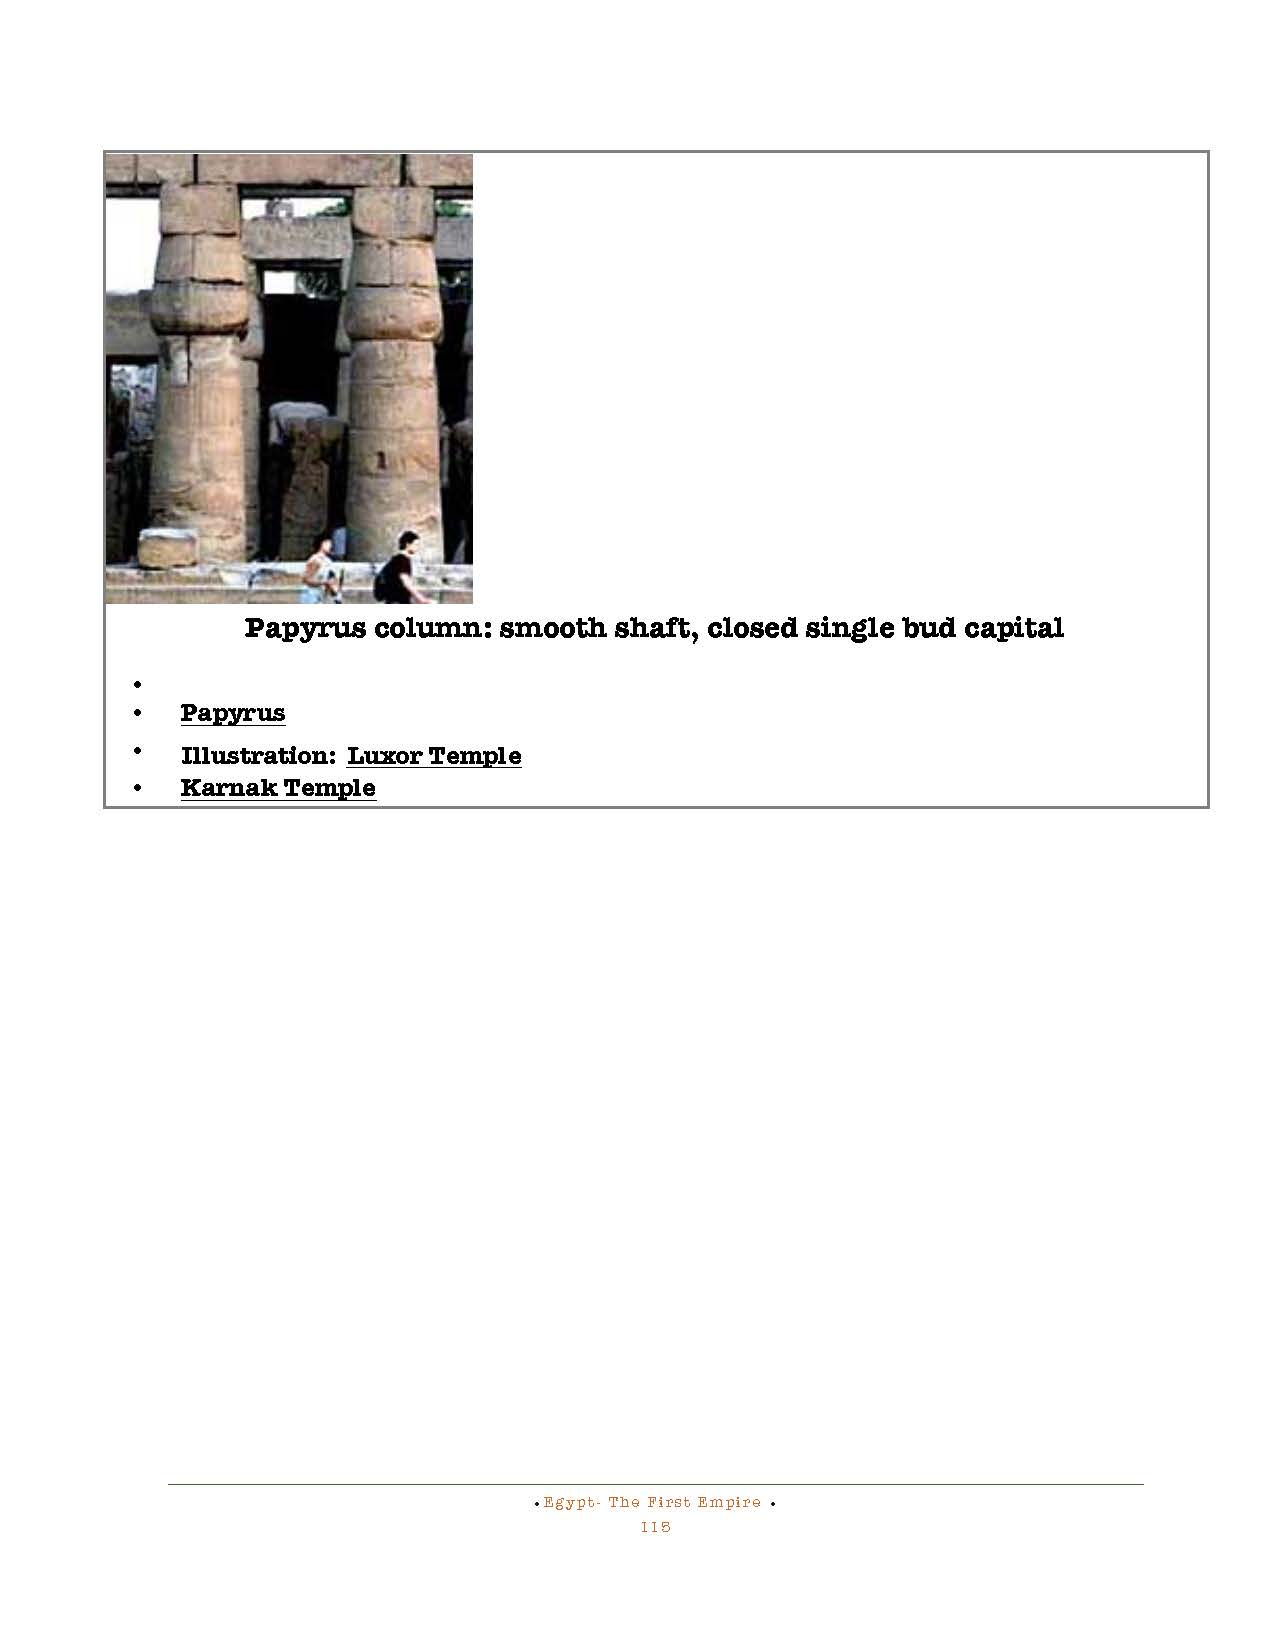 HOCE- Egypt  (First Empire) Notes_Page_115.jpg